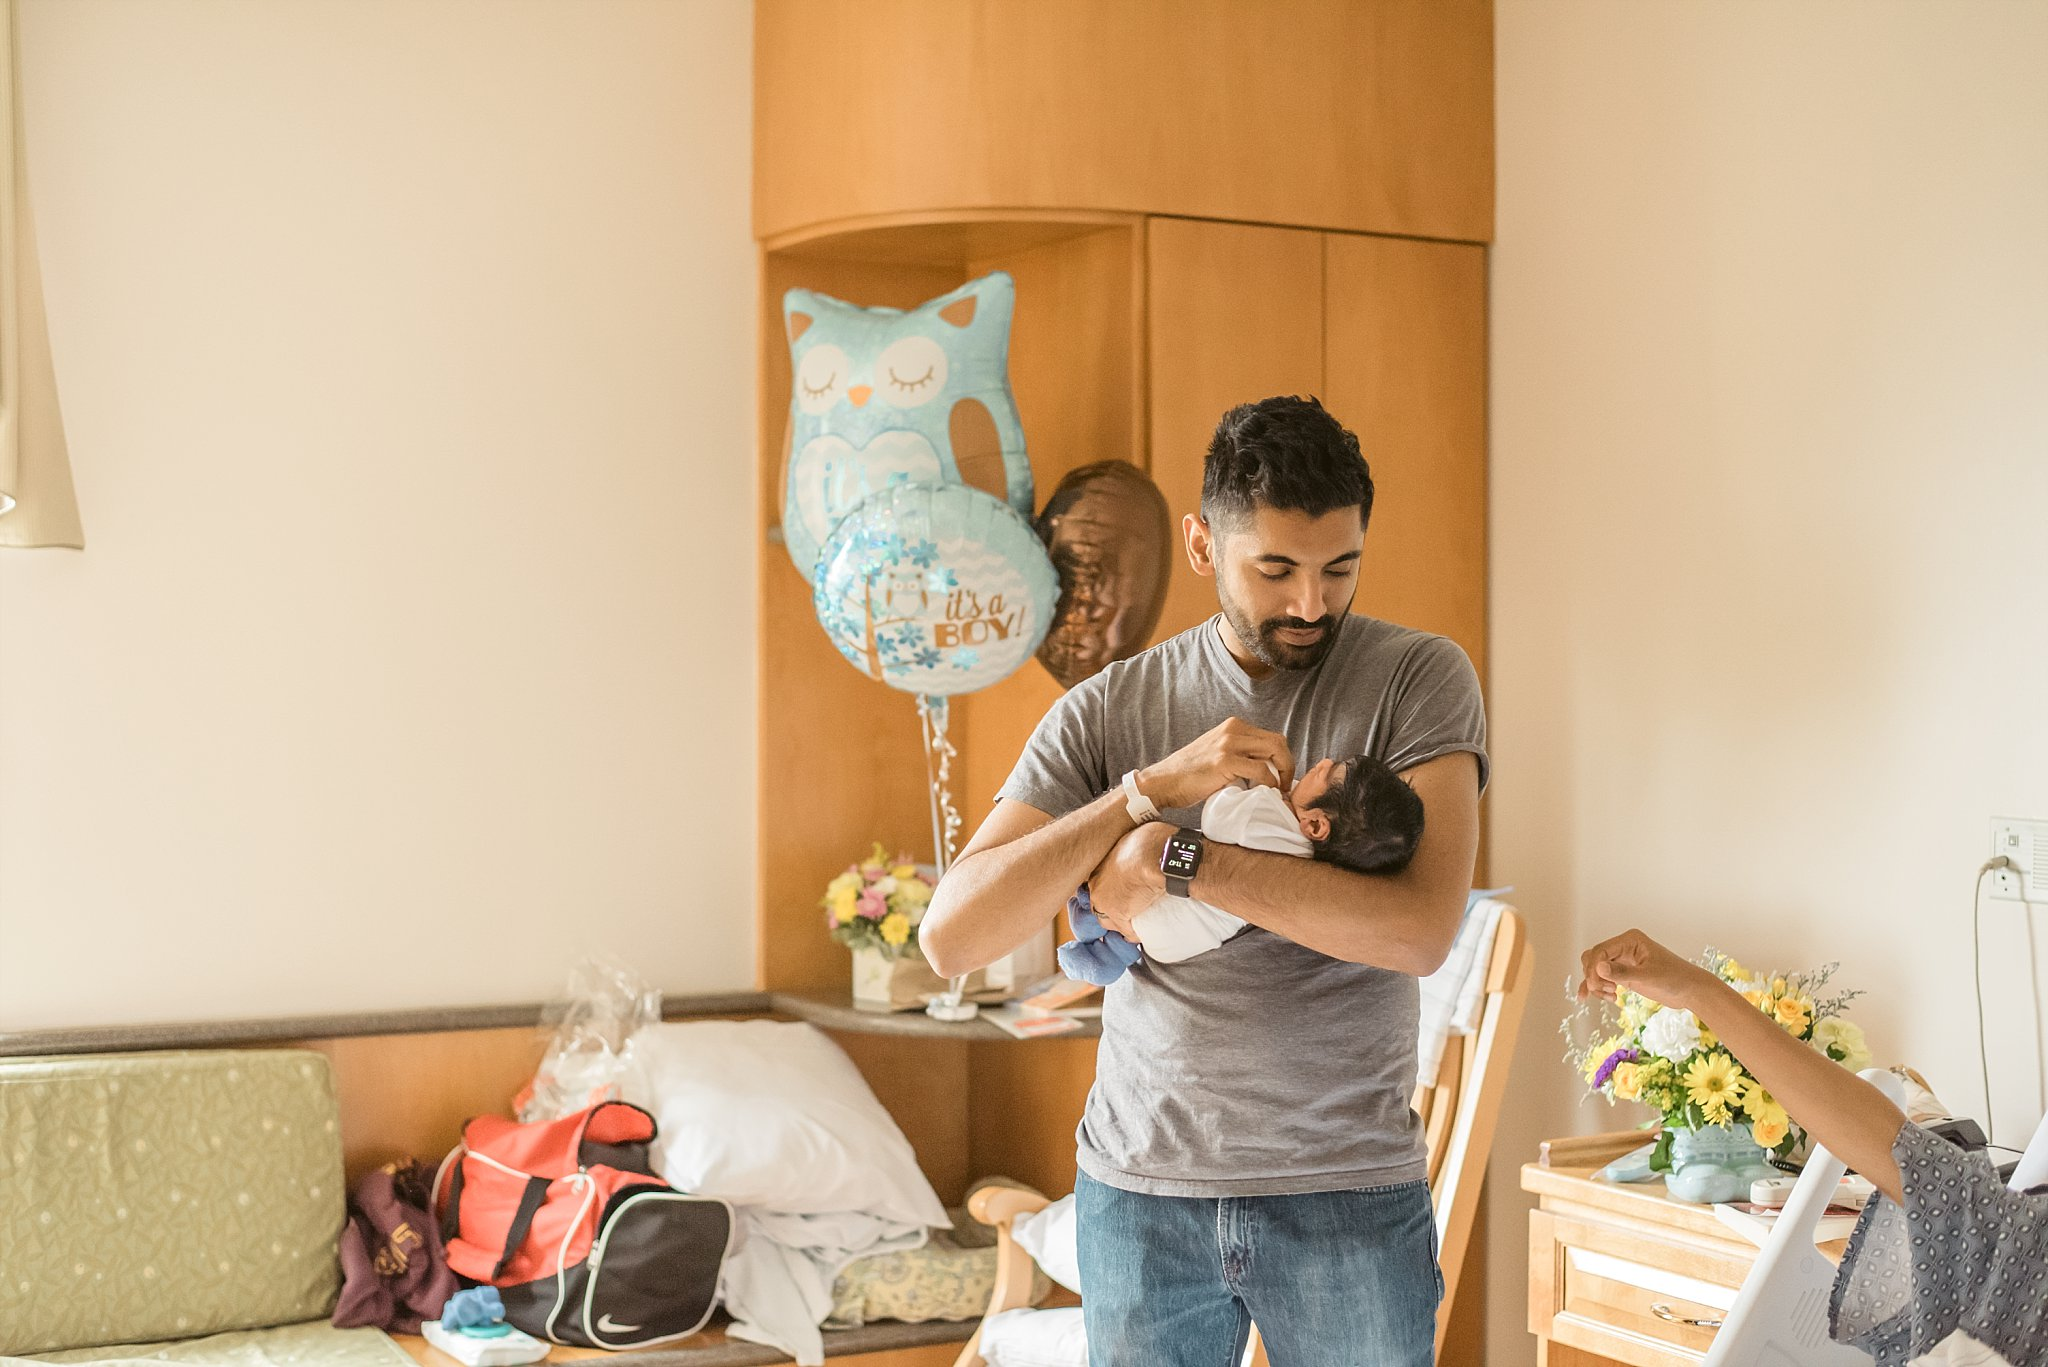 Dad holding baby in hospital room